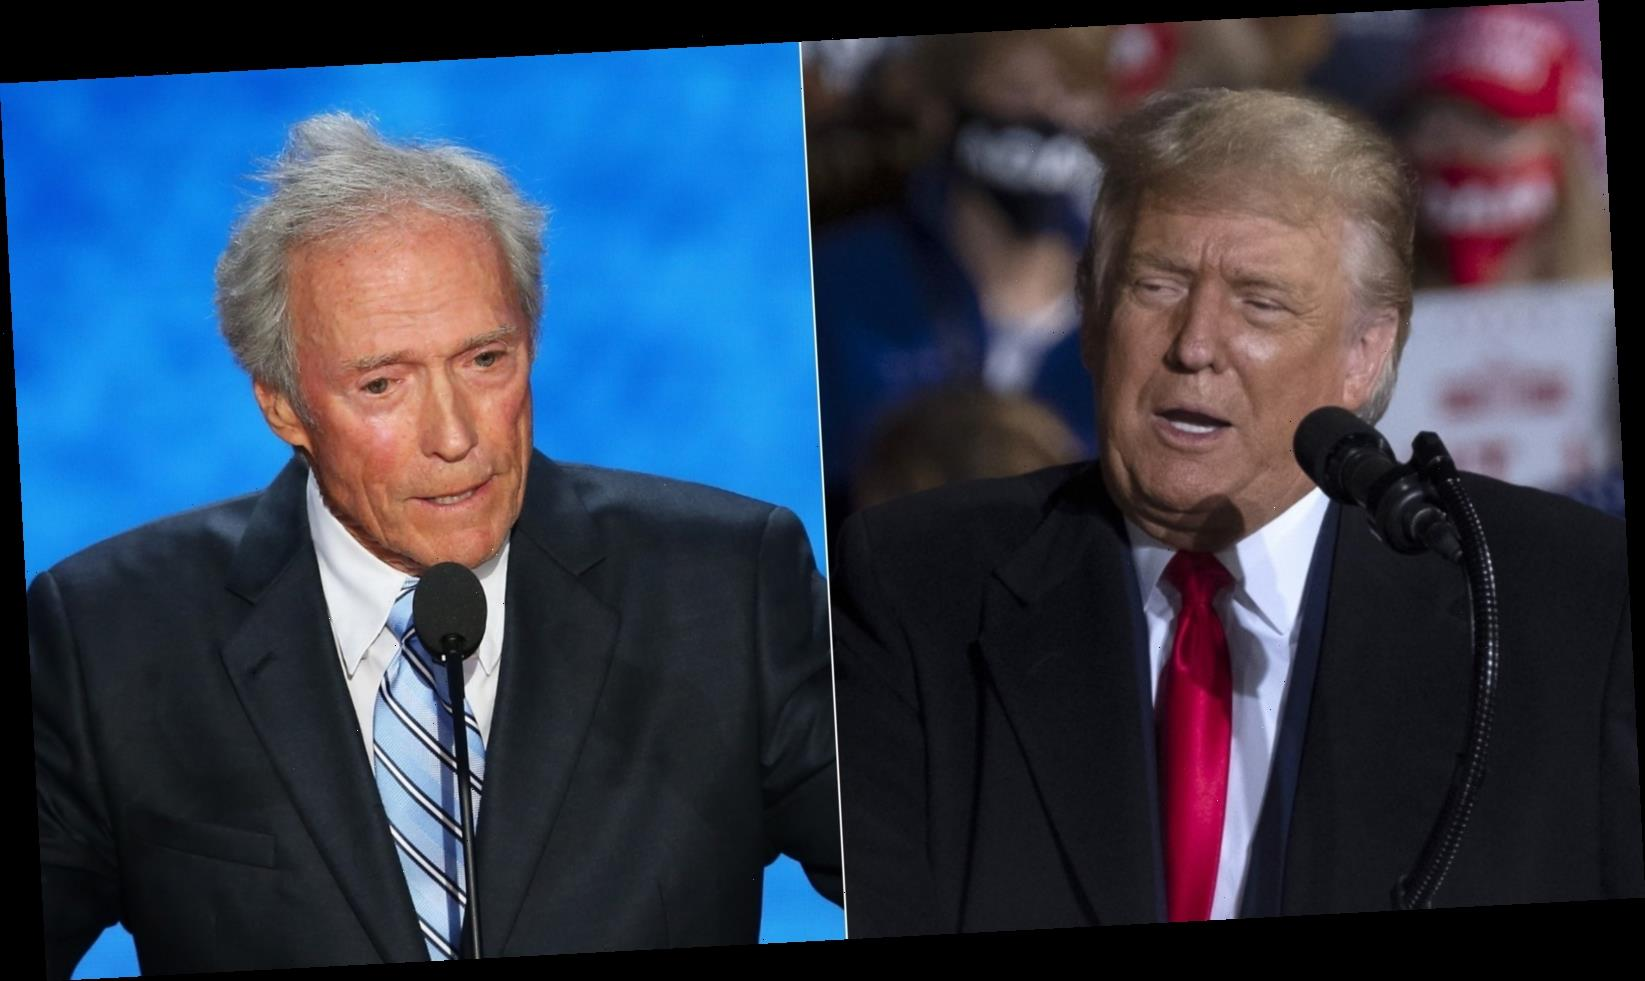 How Clint Eastwood really feels about Donald Trump